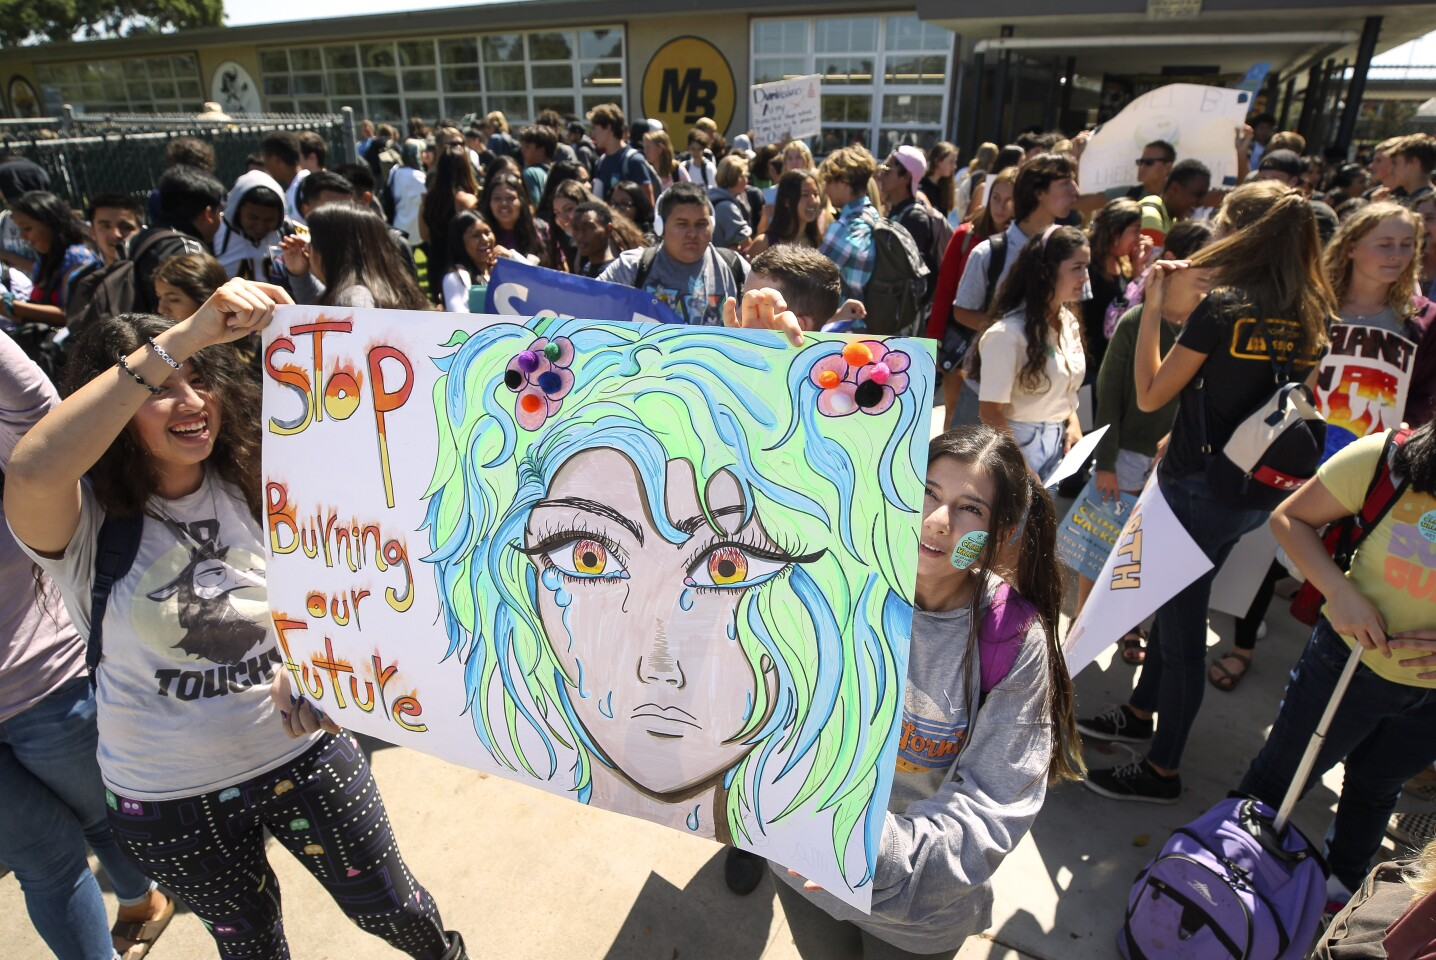 Izabella Speinbock, left, and Fatima Jaser, both 17 and seniors, hold a sign as they and fellow students gather in front of Mission Bay High School after they walked out of classes to participate in the Global Climate Strike on Friday, September 20, 2019 in San Diego, California.